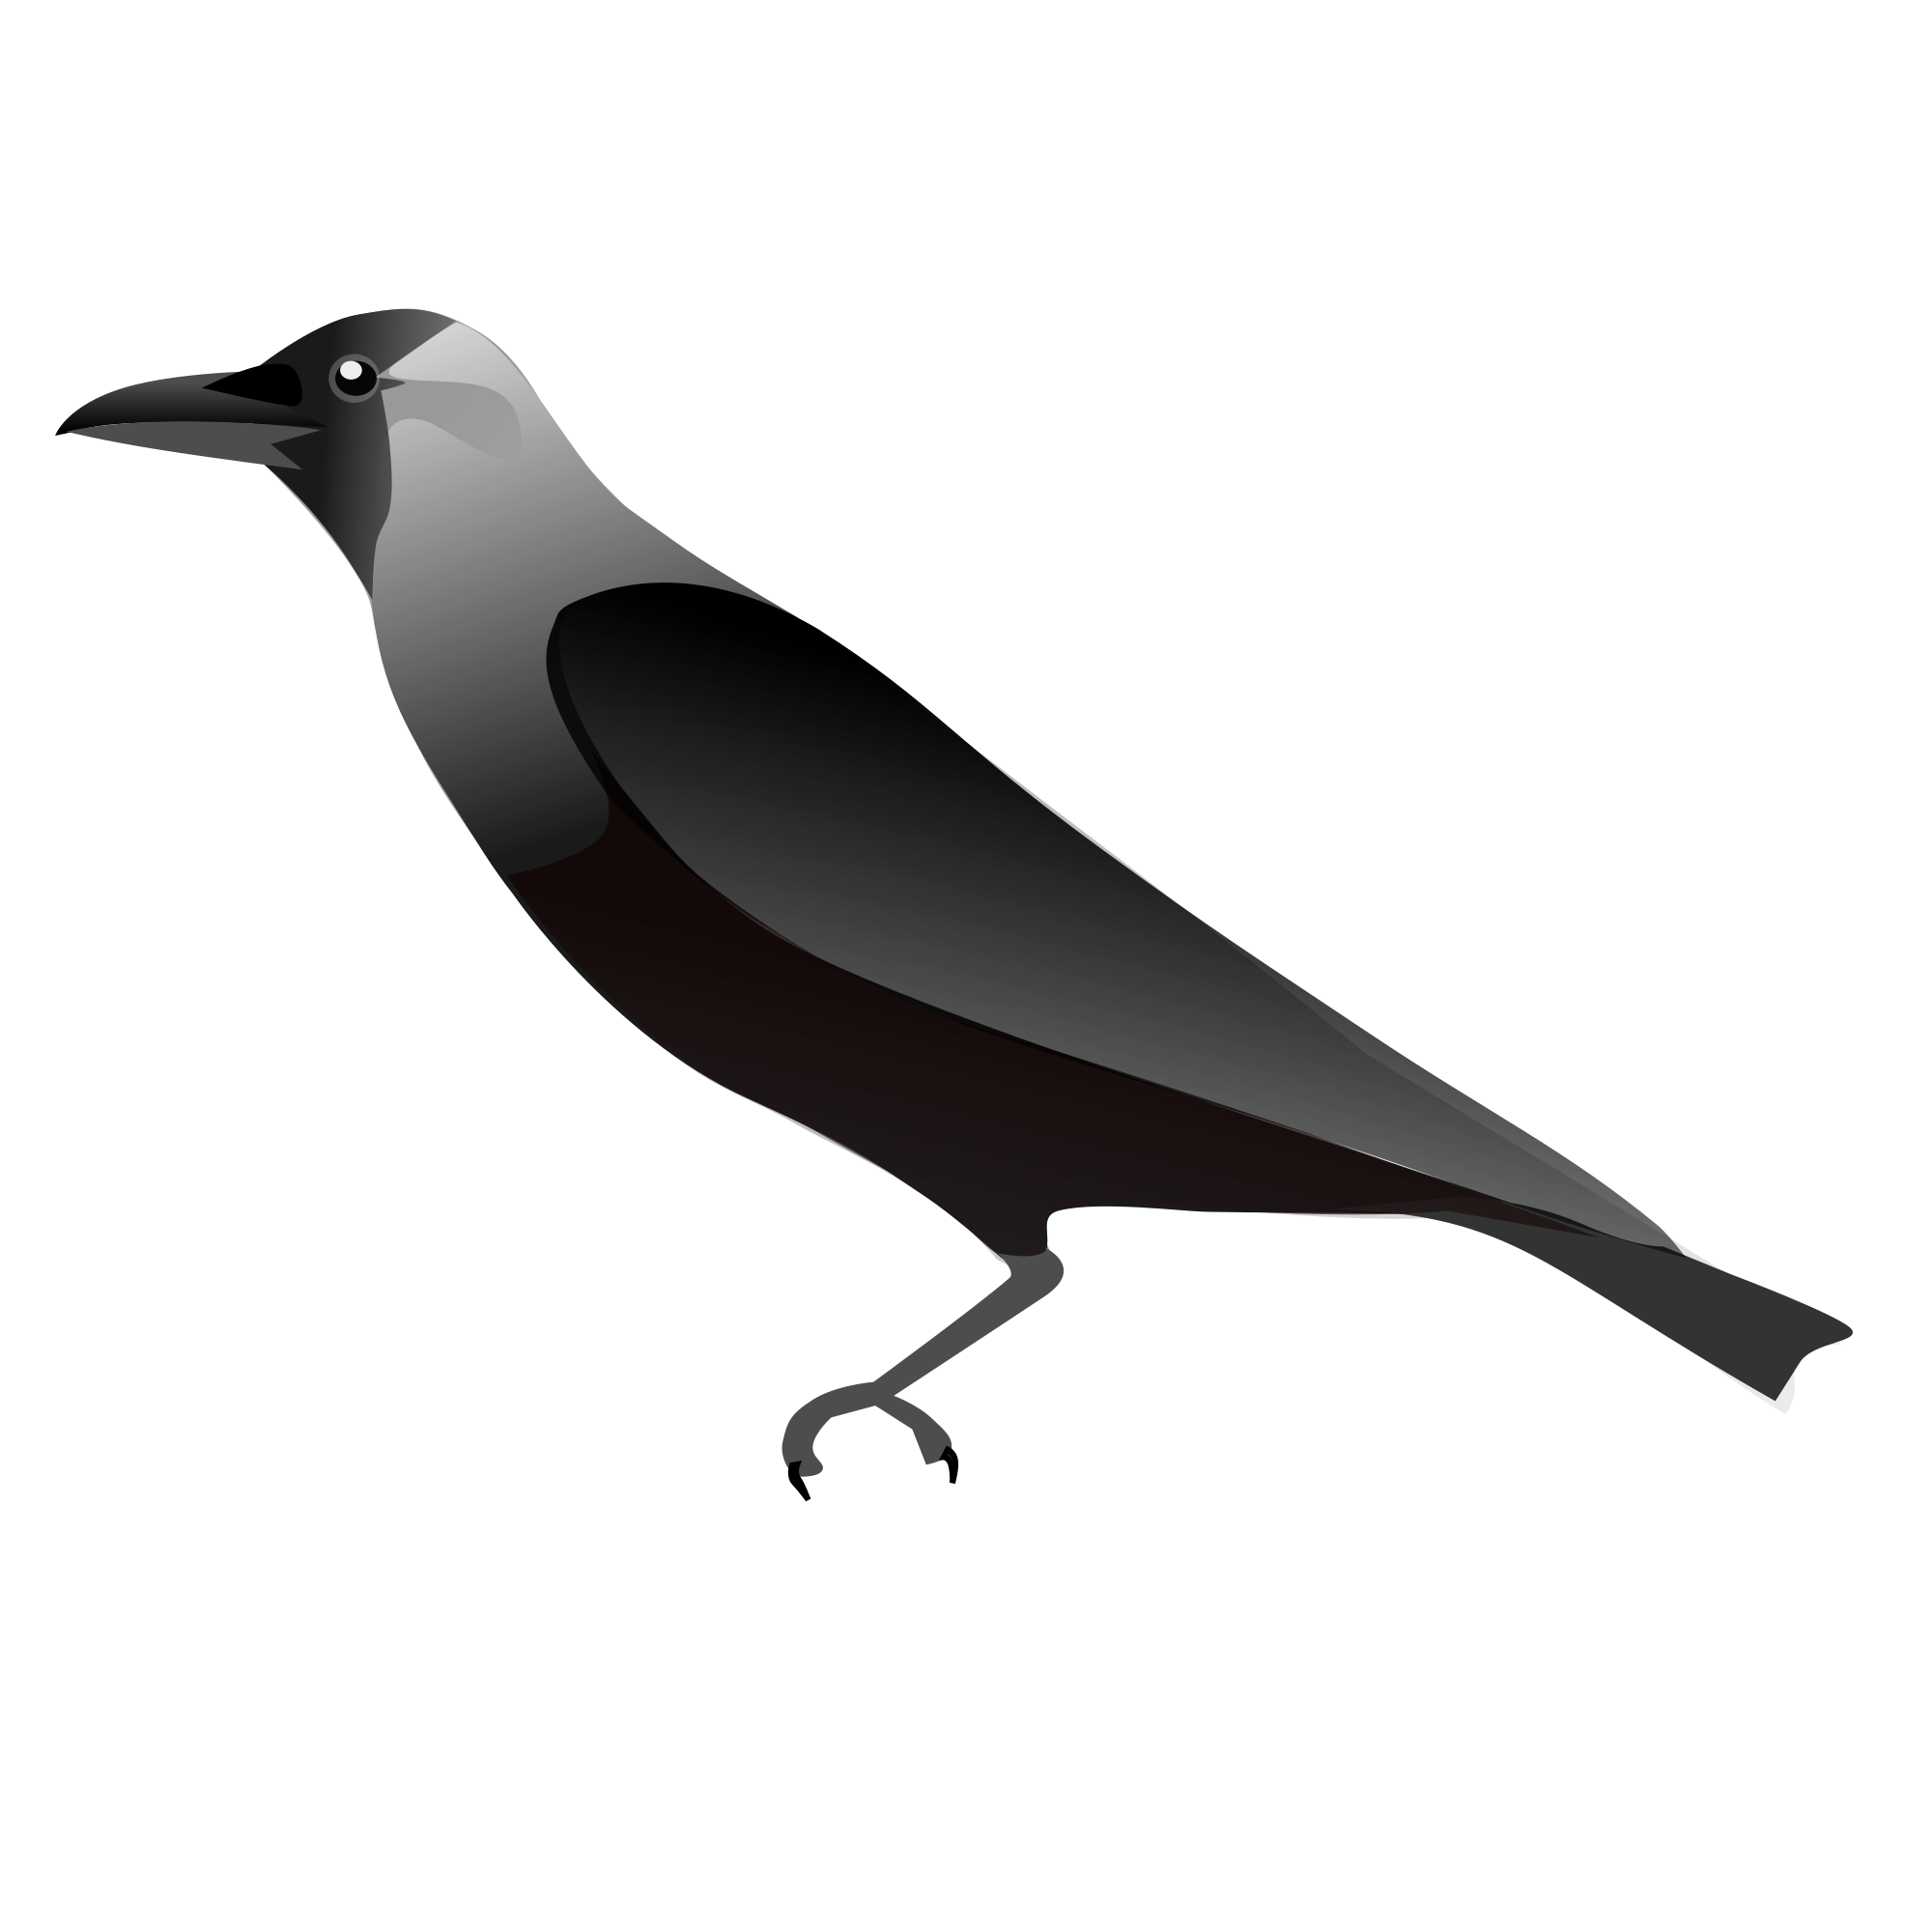 File housecrow wikimedia commons. Crow clipart svg